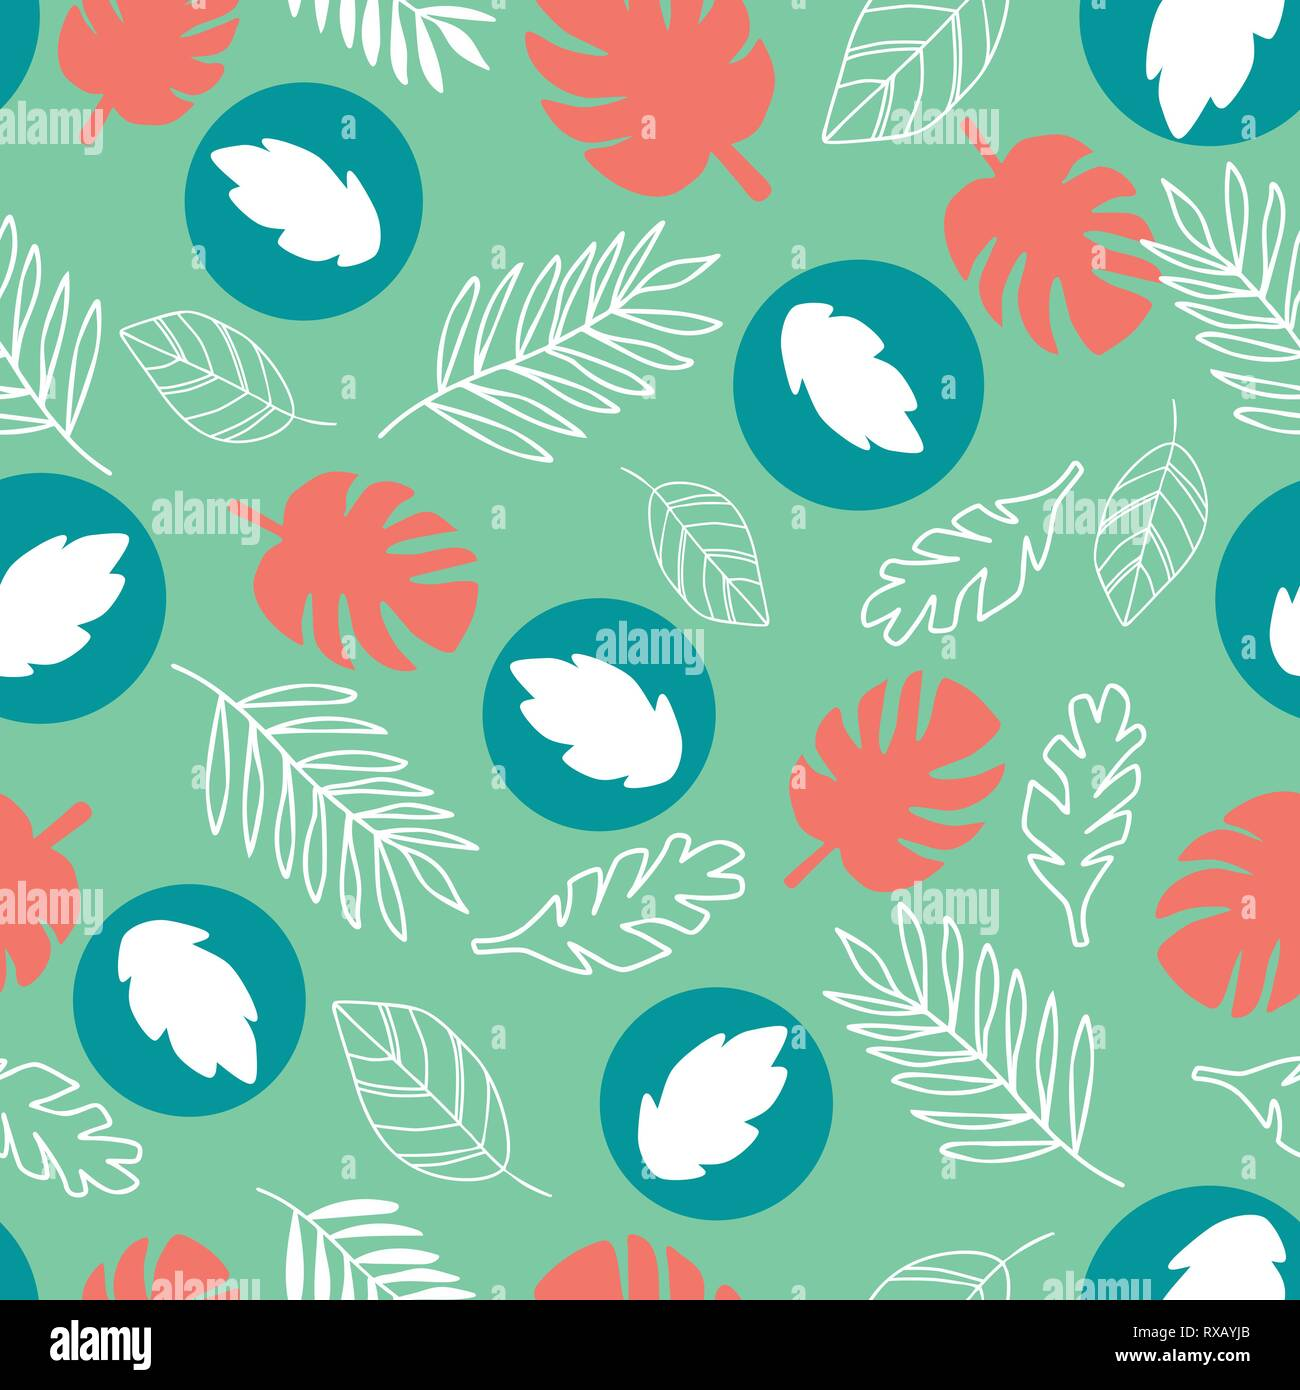 Exotic leaves on a green background. Tropical pattern with banana leaves. - Stock Vector